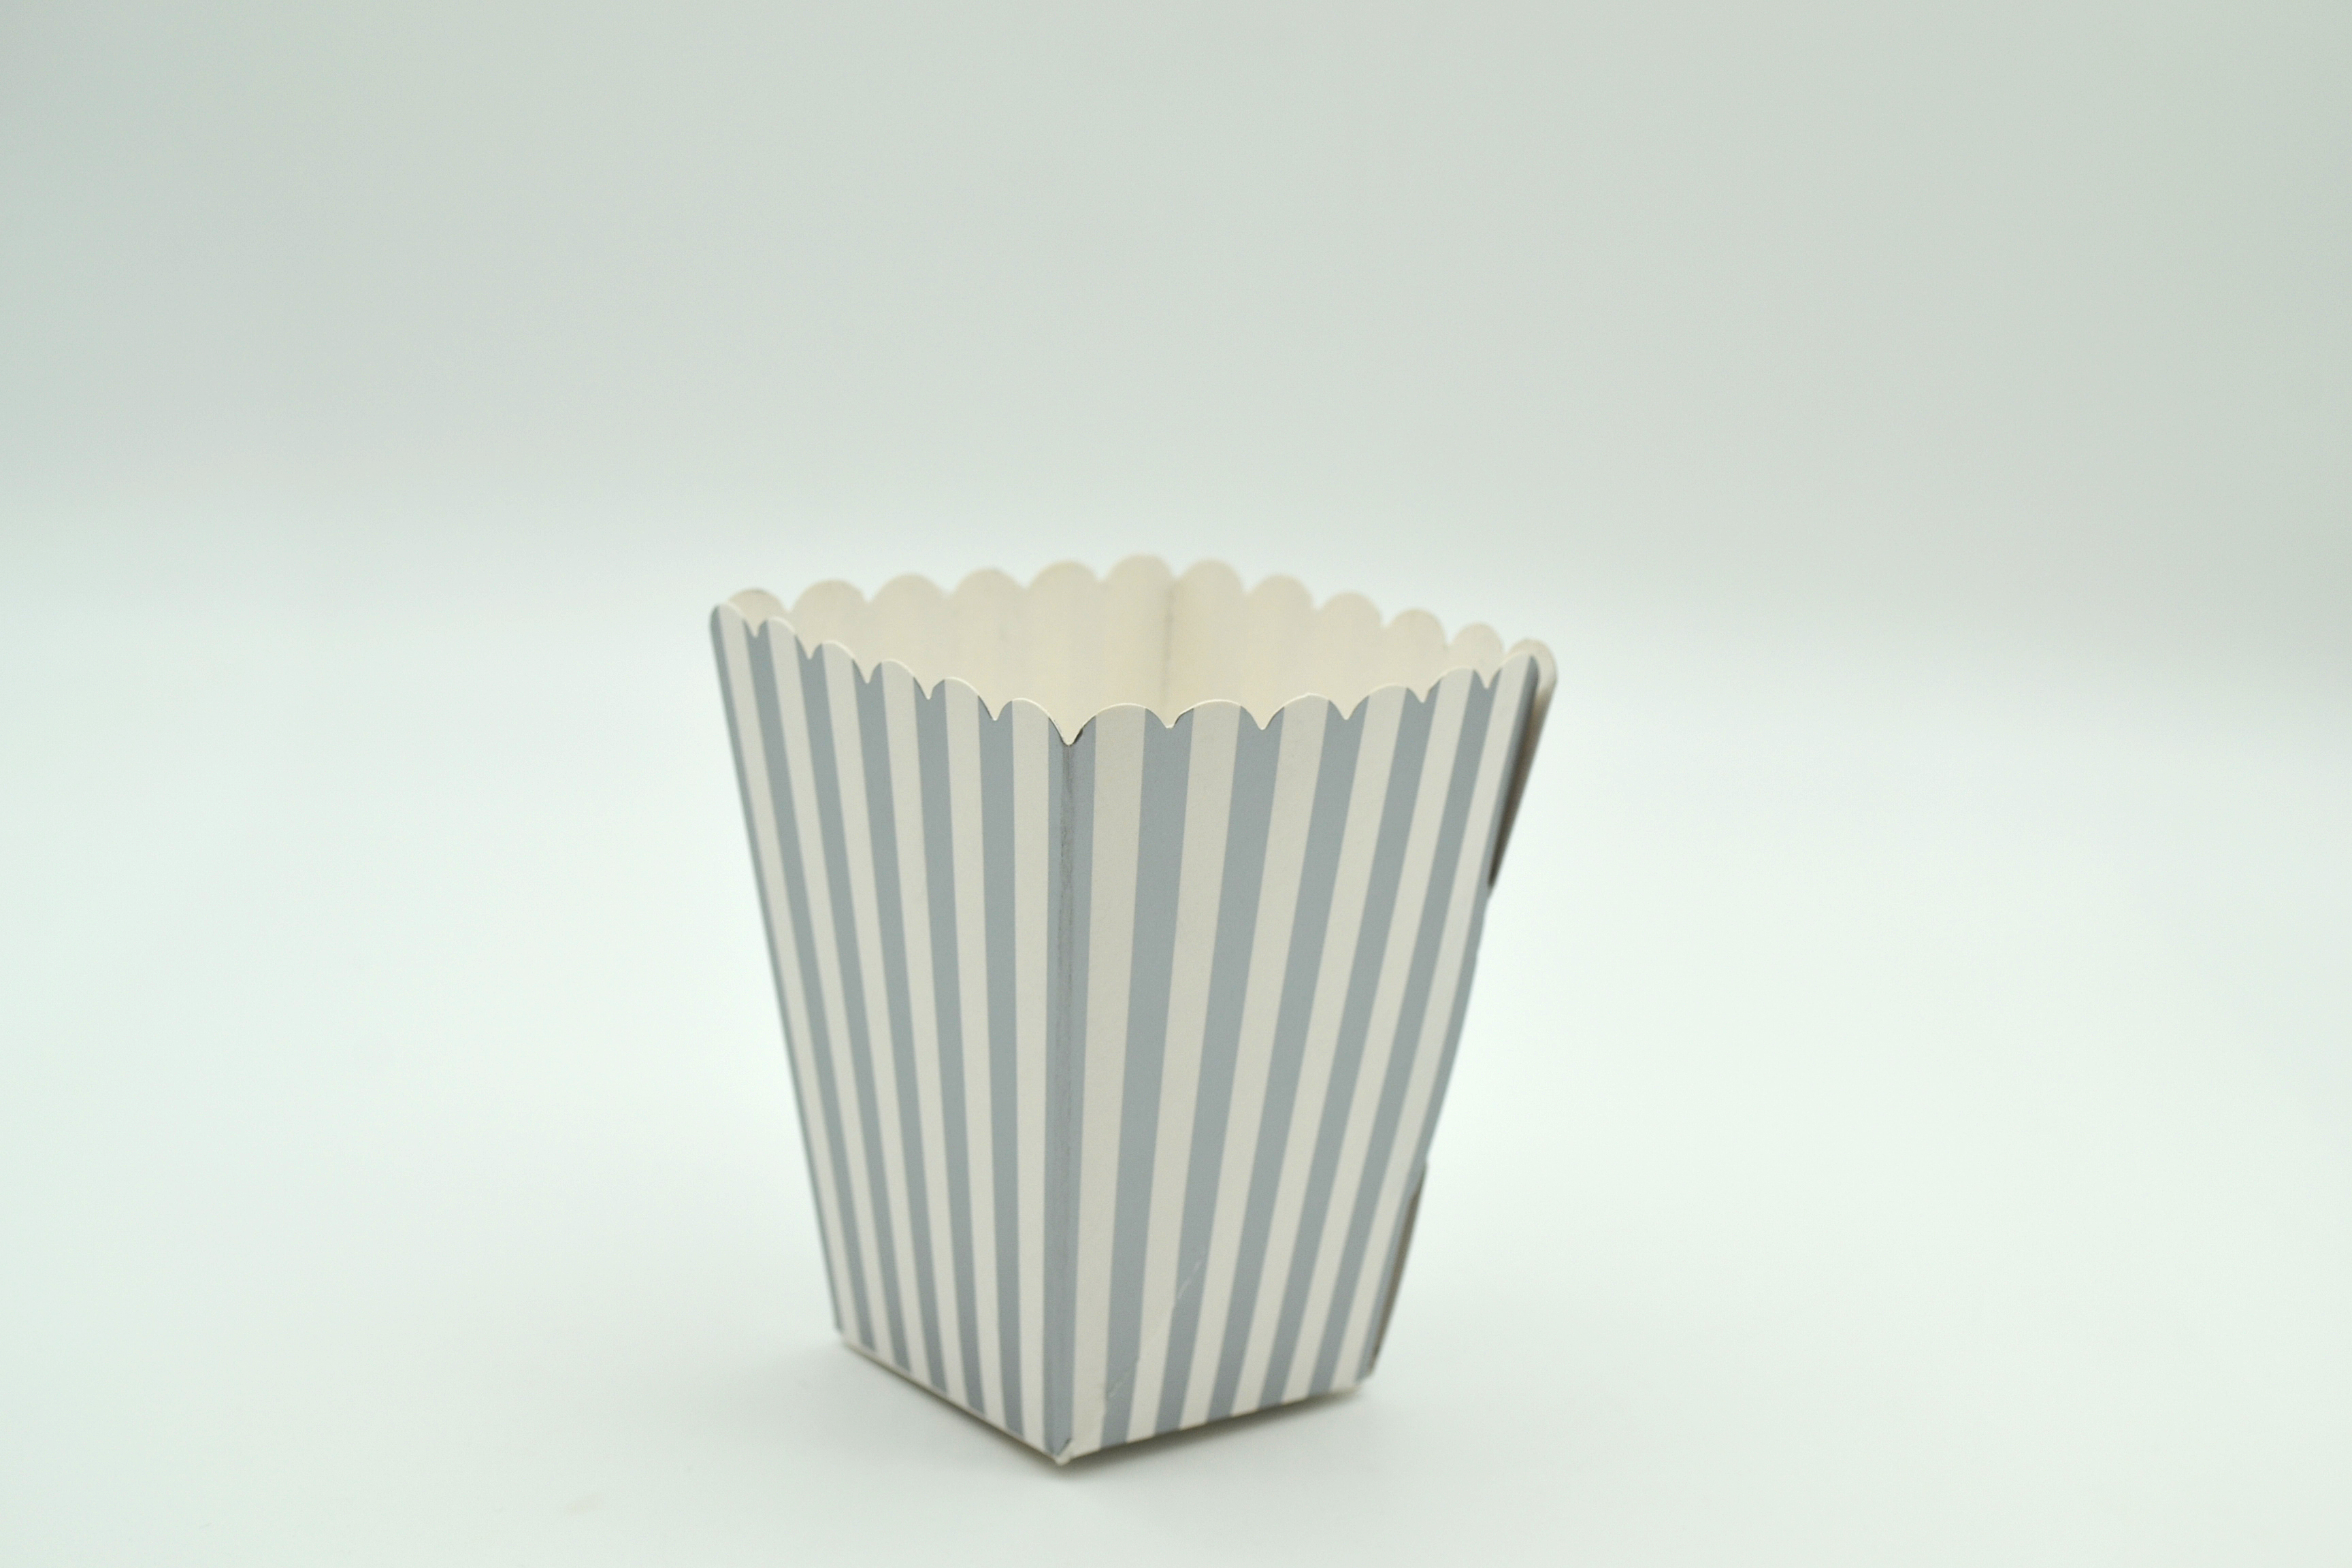 Box Popcorn Mini Silver 5 x 5 x 10 cm (each)